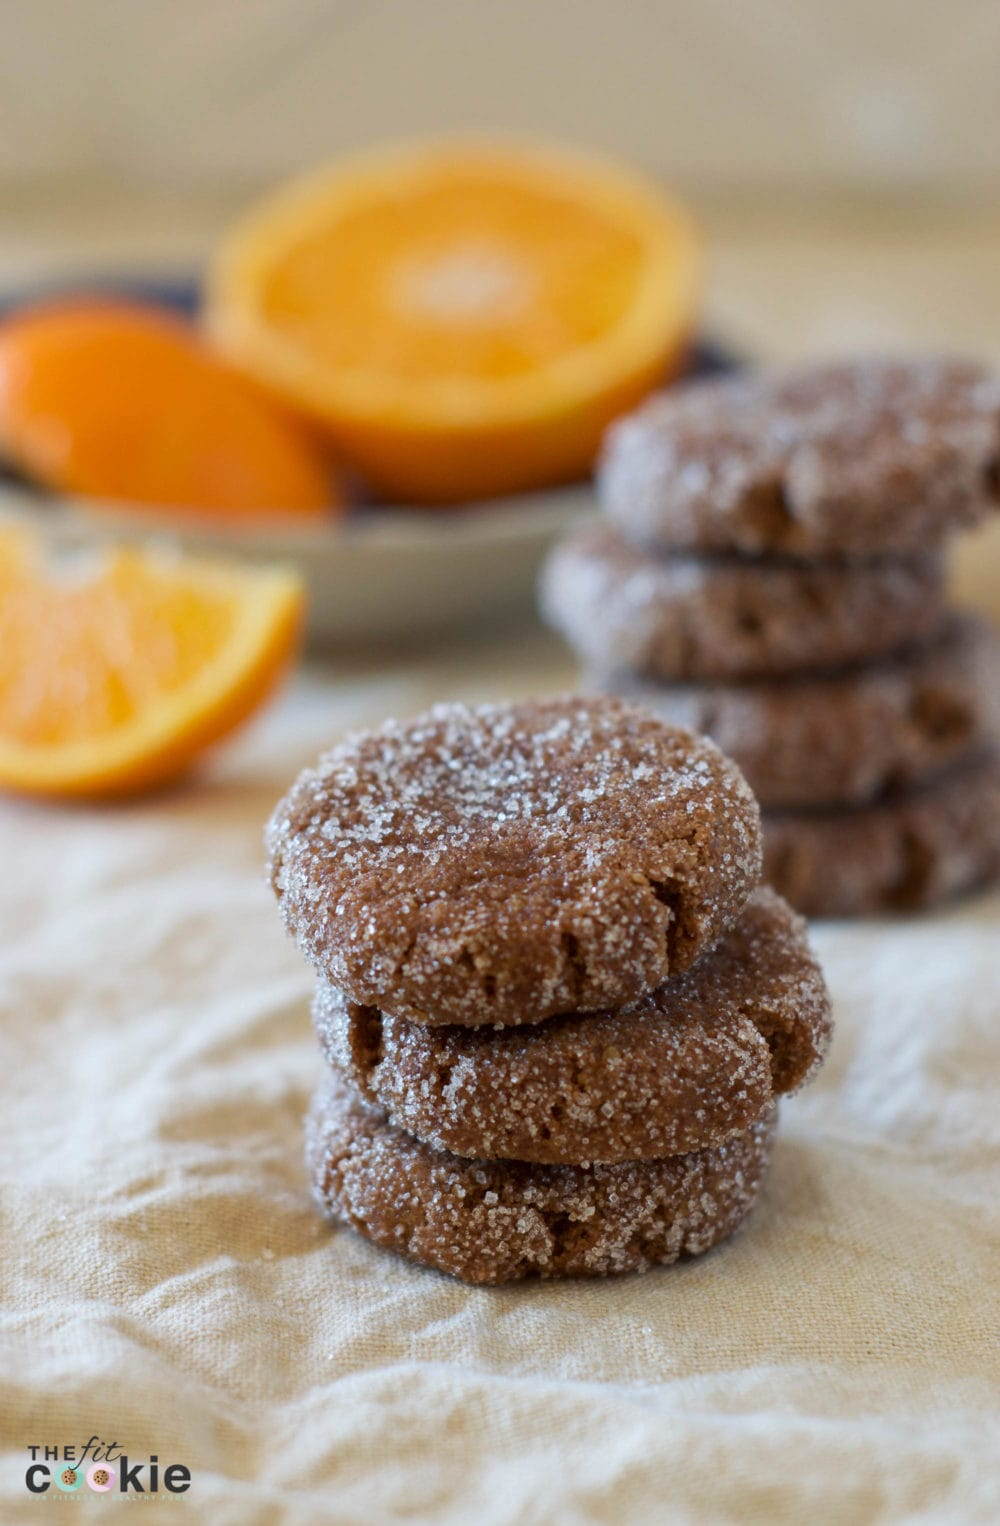 GRAIN FREE CHOCOLATE ORANGE COOKIES by The Fit Cookie - These flavorful cookies are packed with ingredients on the healthier side, and accommodate both vegan and sugar-free diets!